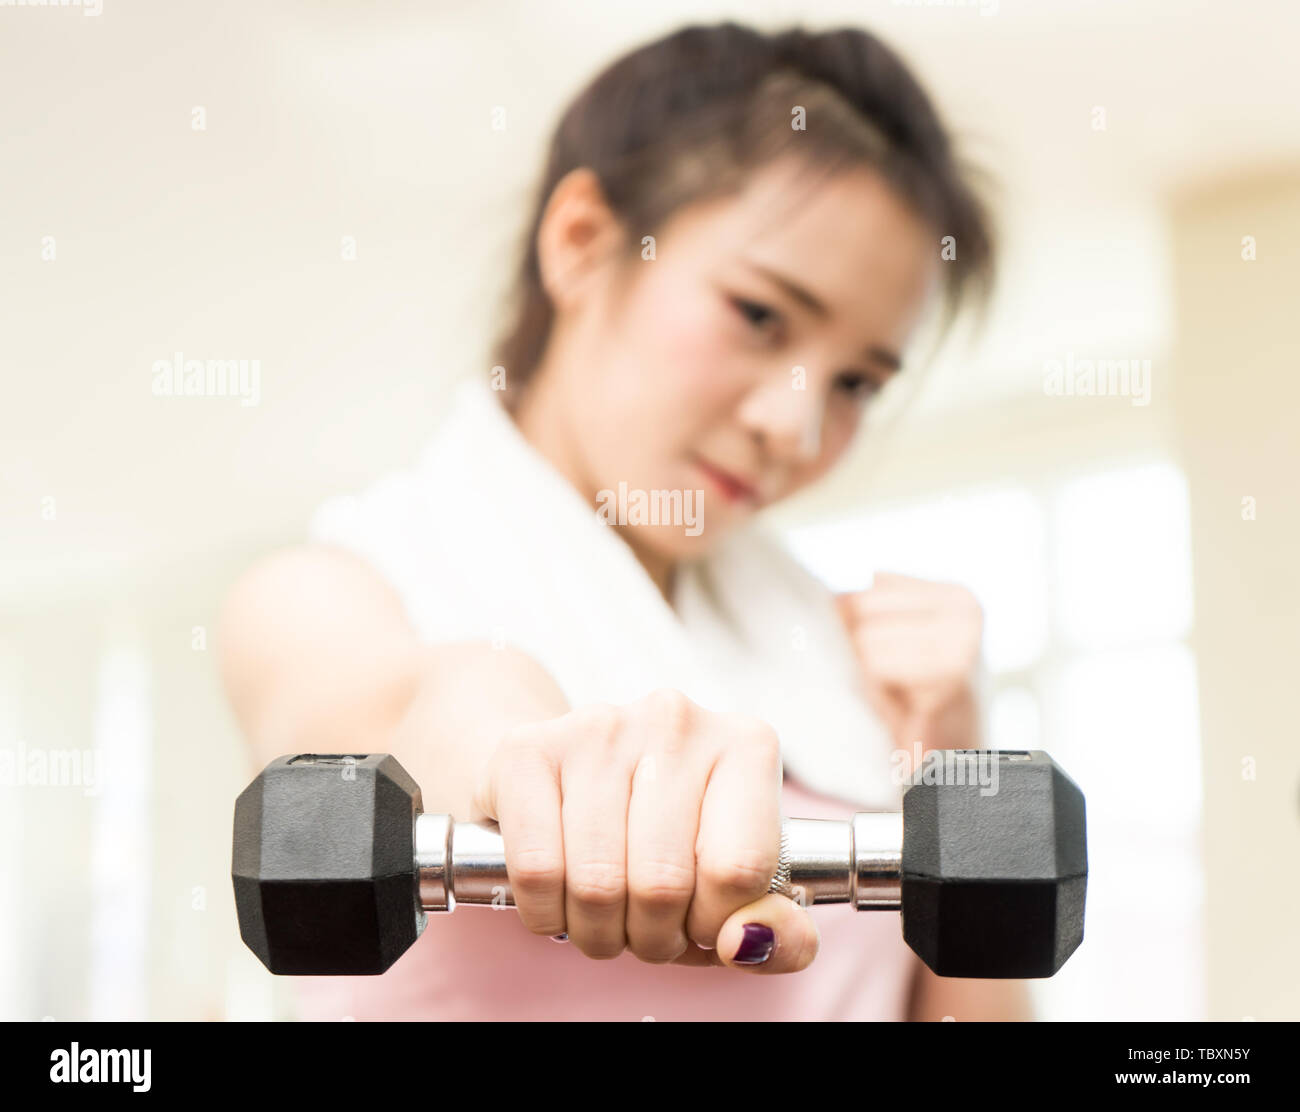 Asian woman is punching the Dumbbell forward in fitness - Stock Image